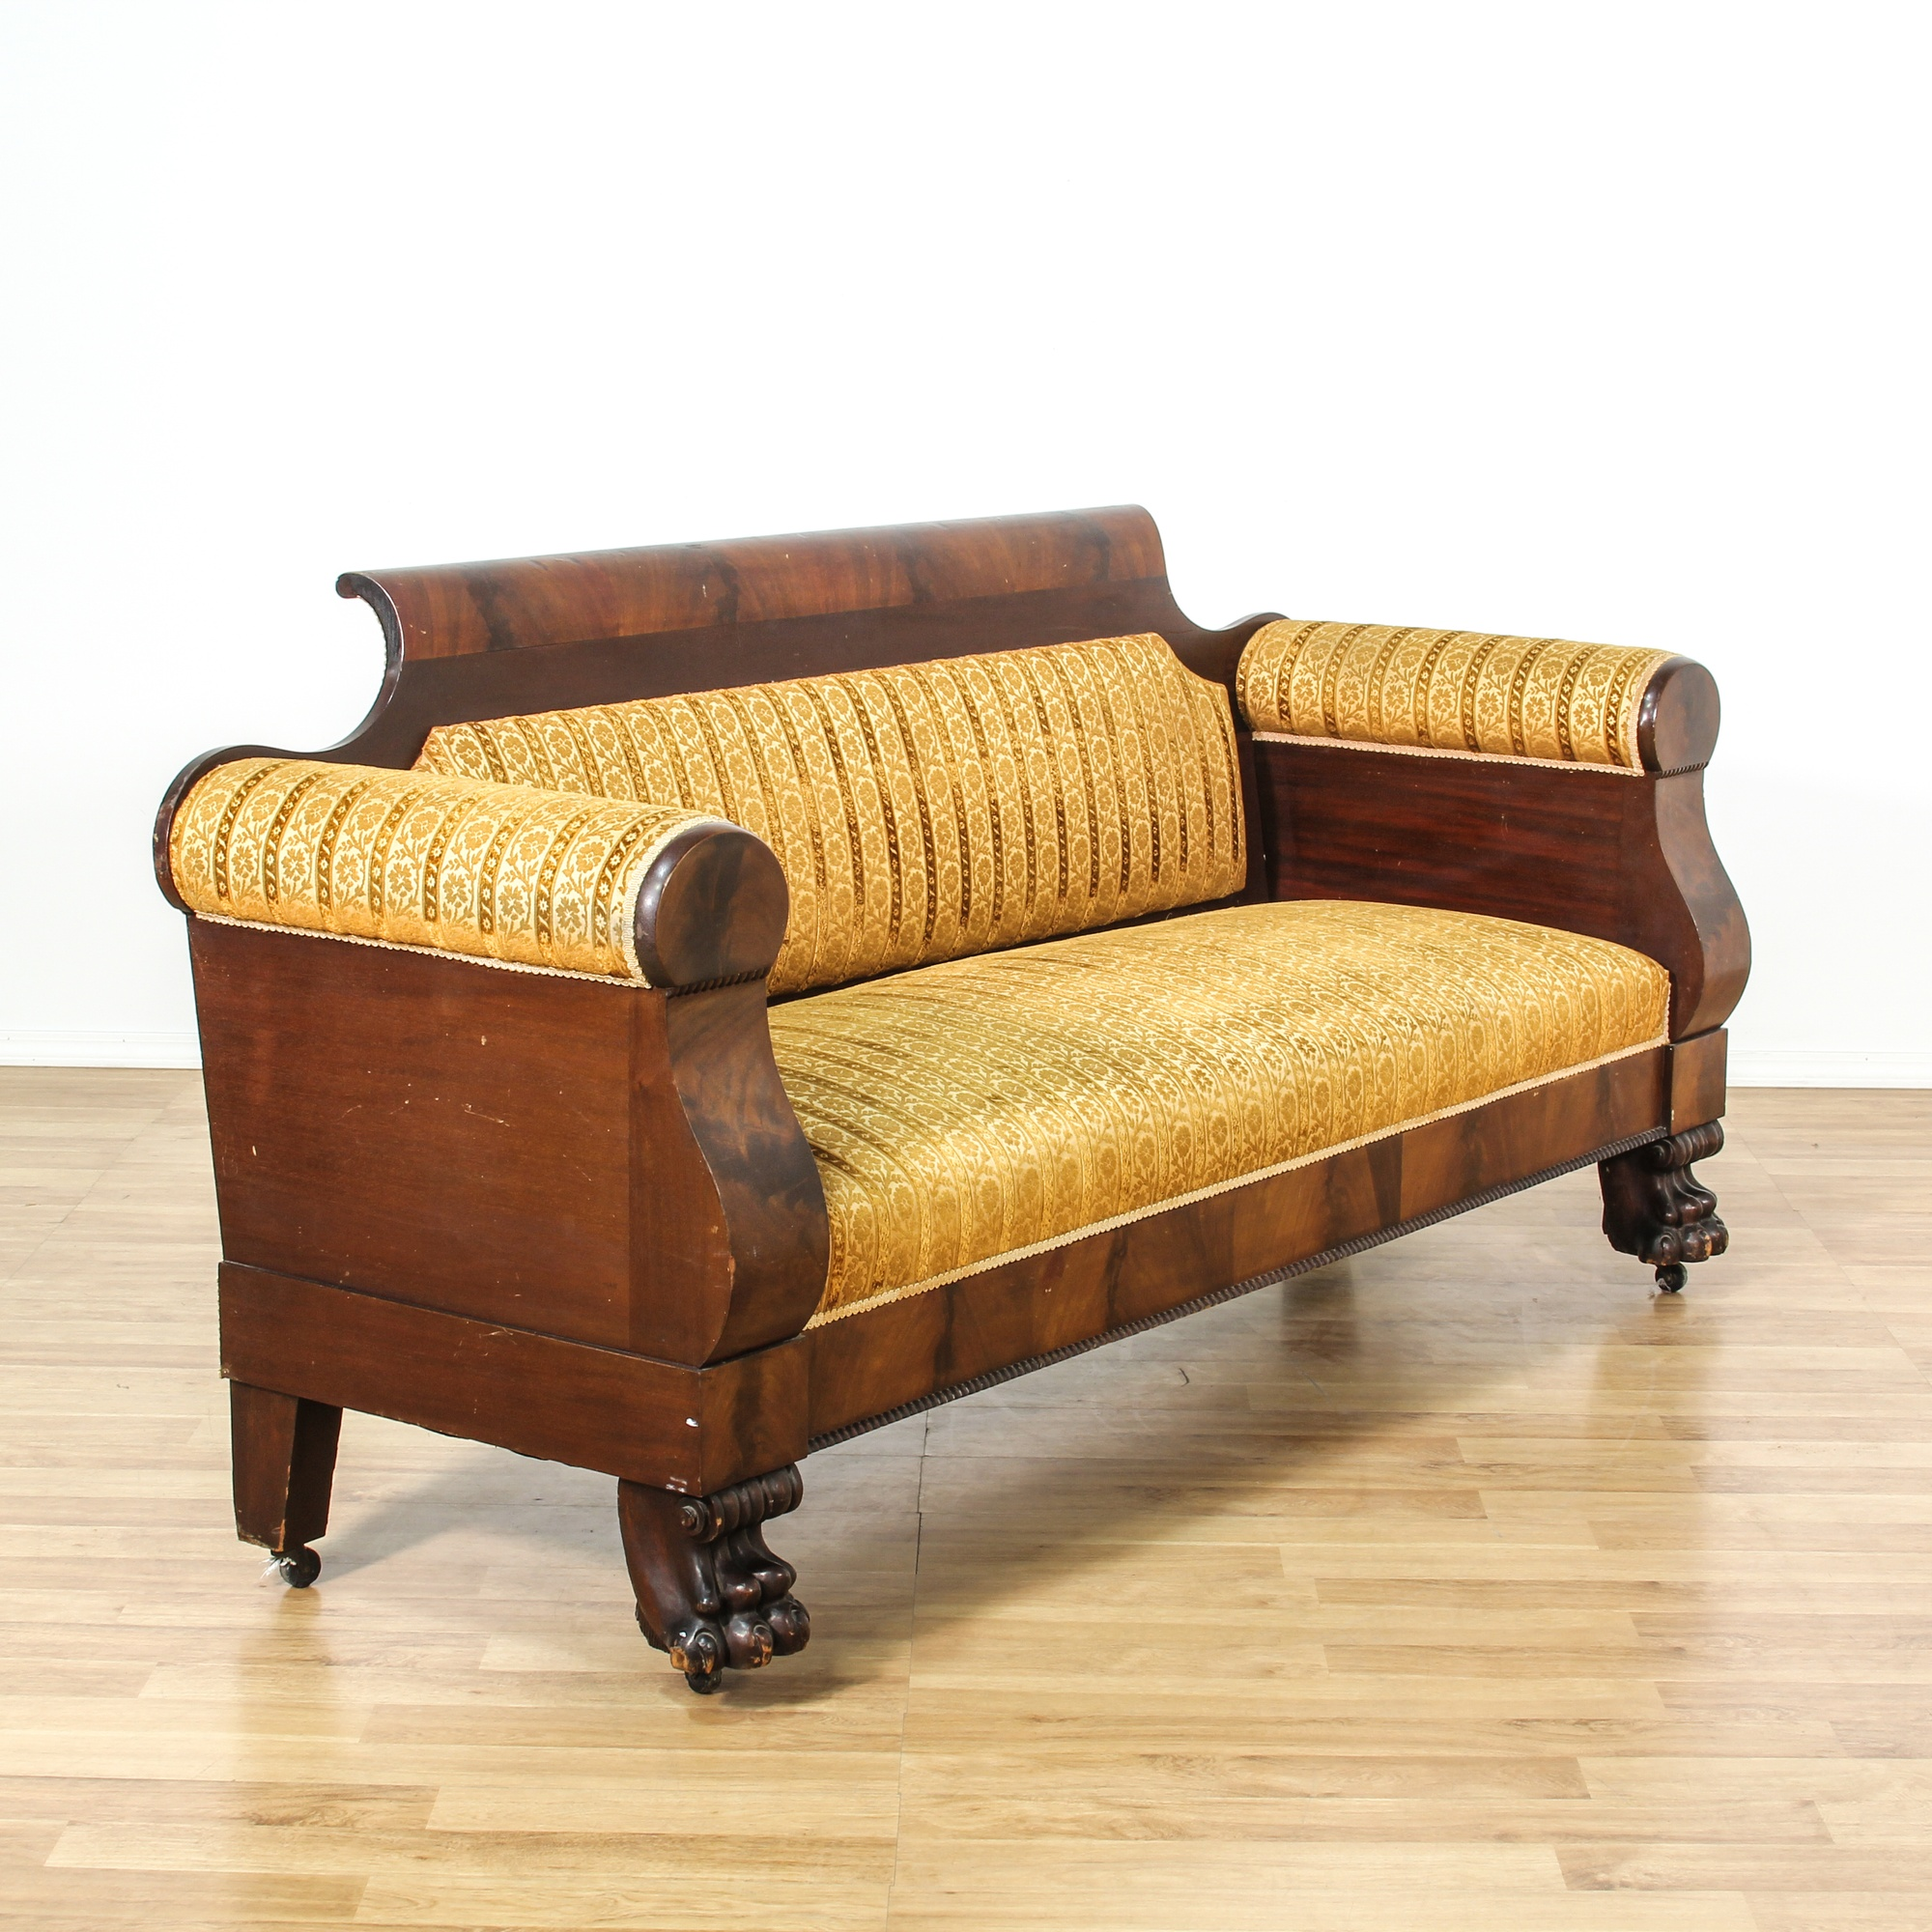 American Empire Carved Mahogany Gold Floral Sofa Loveseat Vintage Furniture San Diego Los